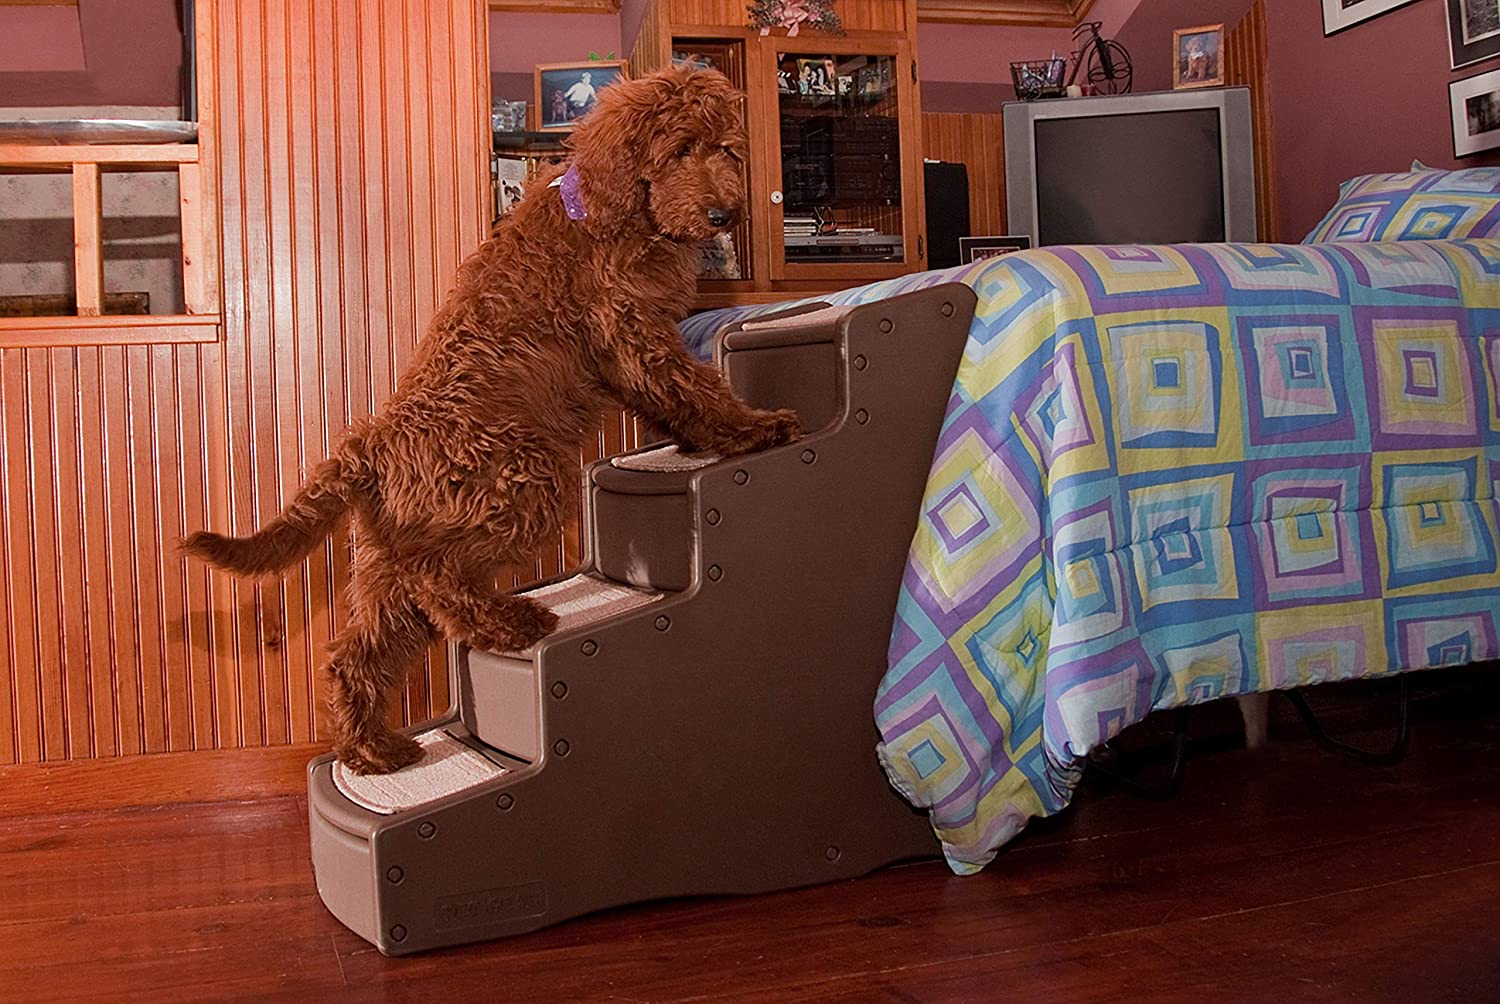 Pet Gear Easy Step IV Pet Stairs, 4-Step for Cats Dogs, Portable Lightweight, Sturdy